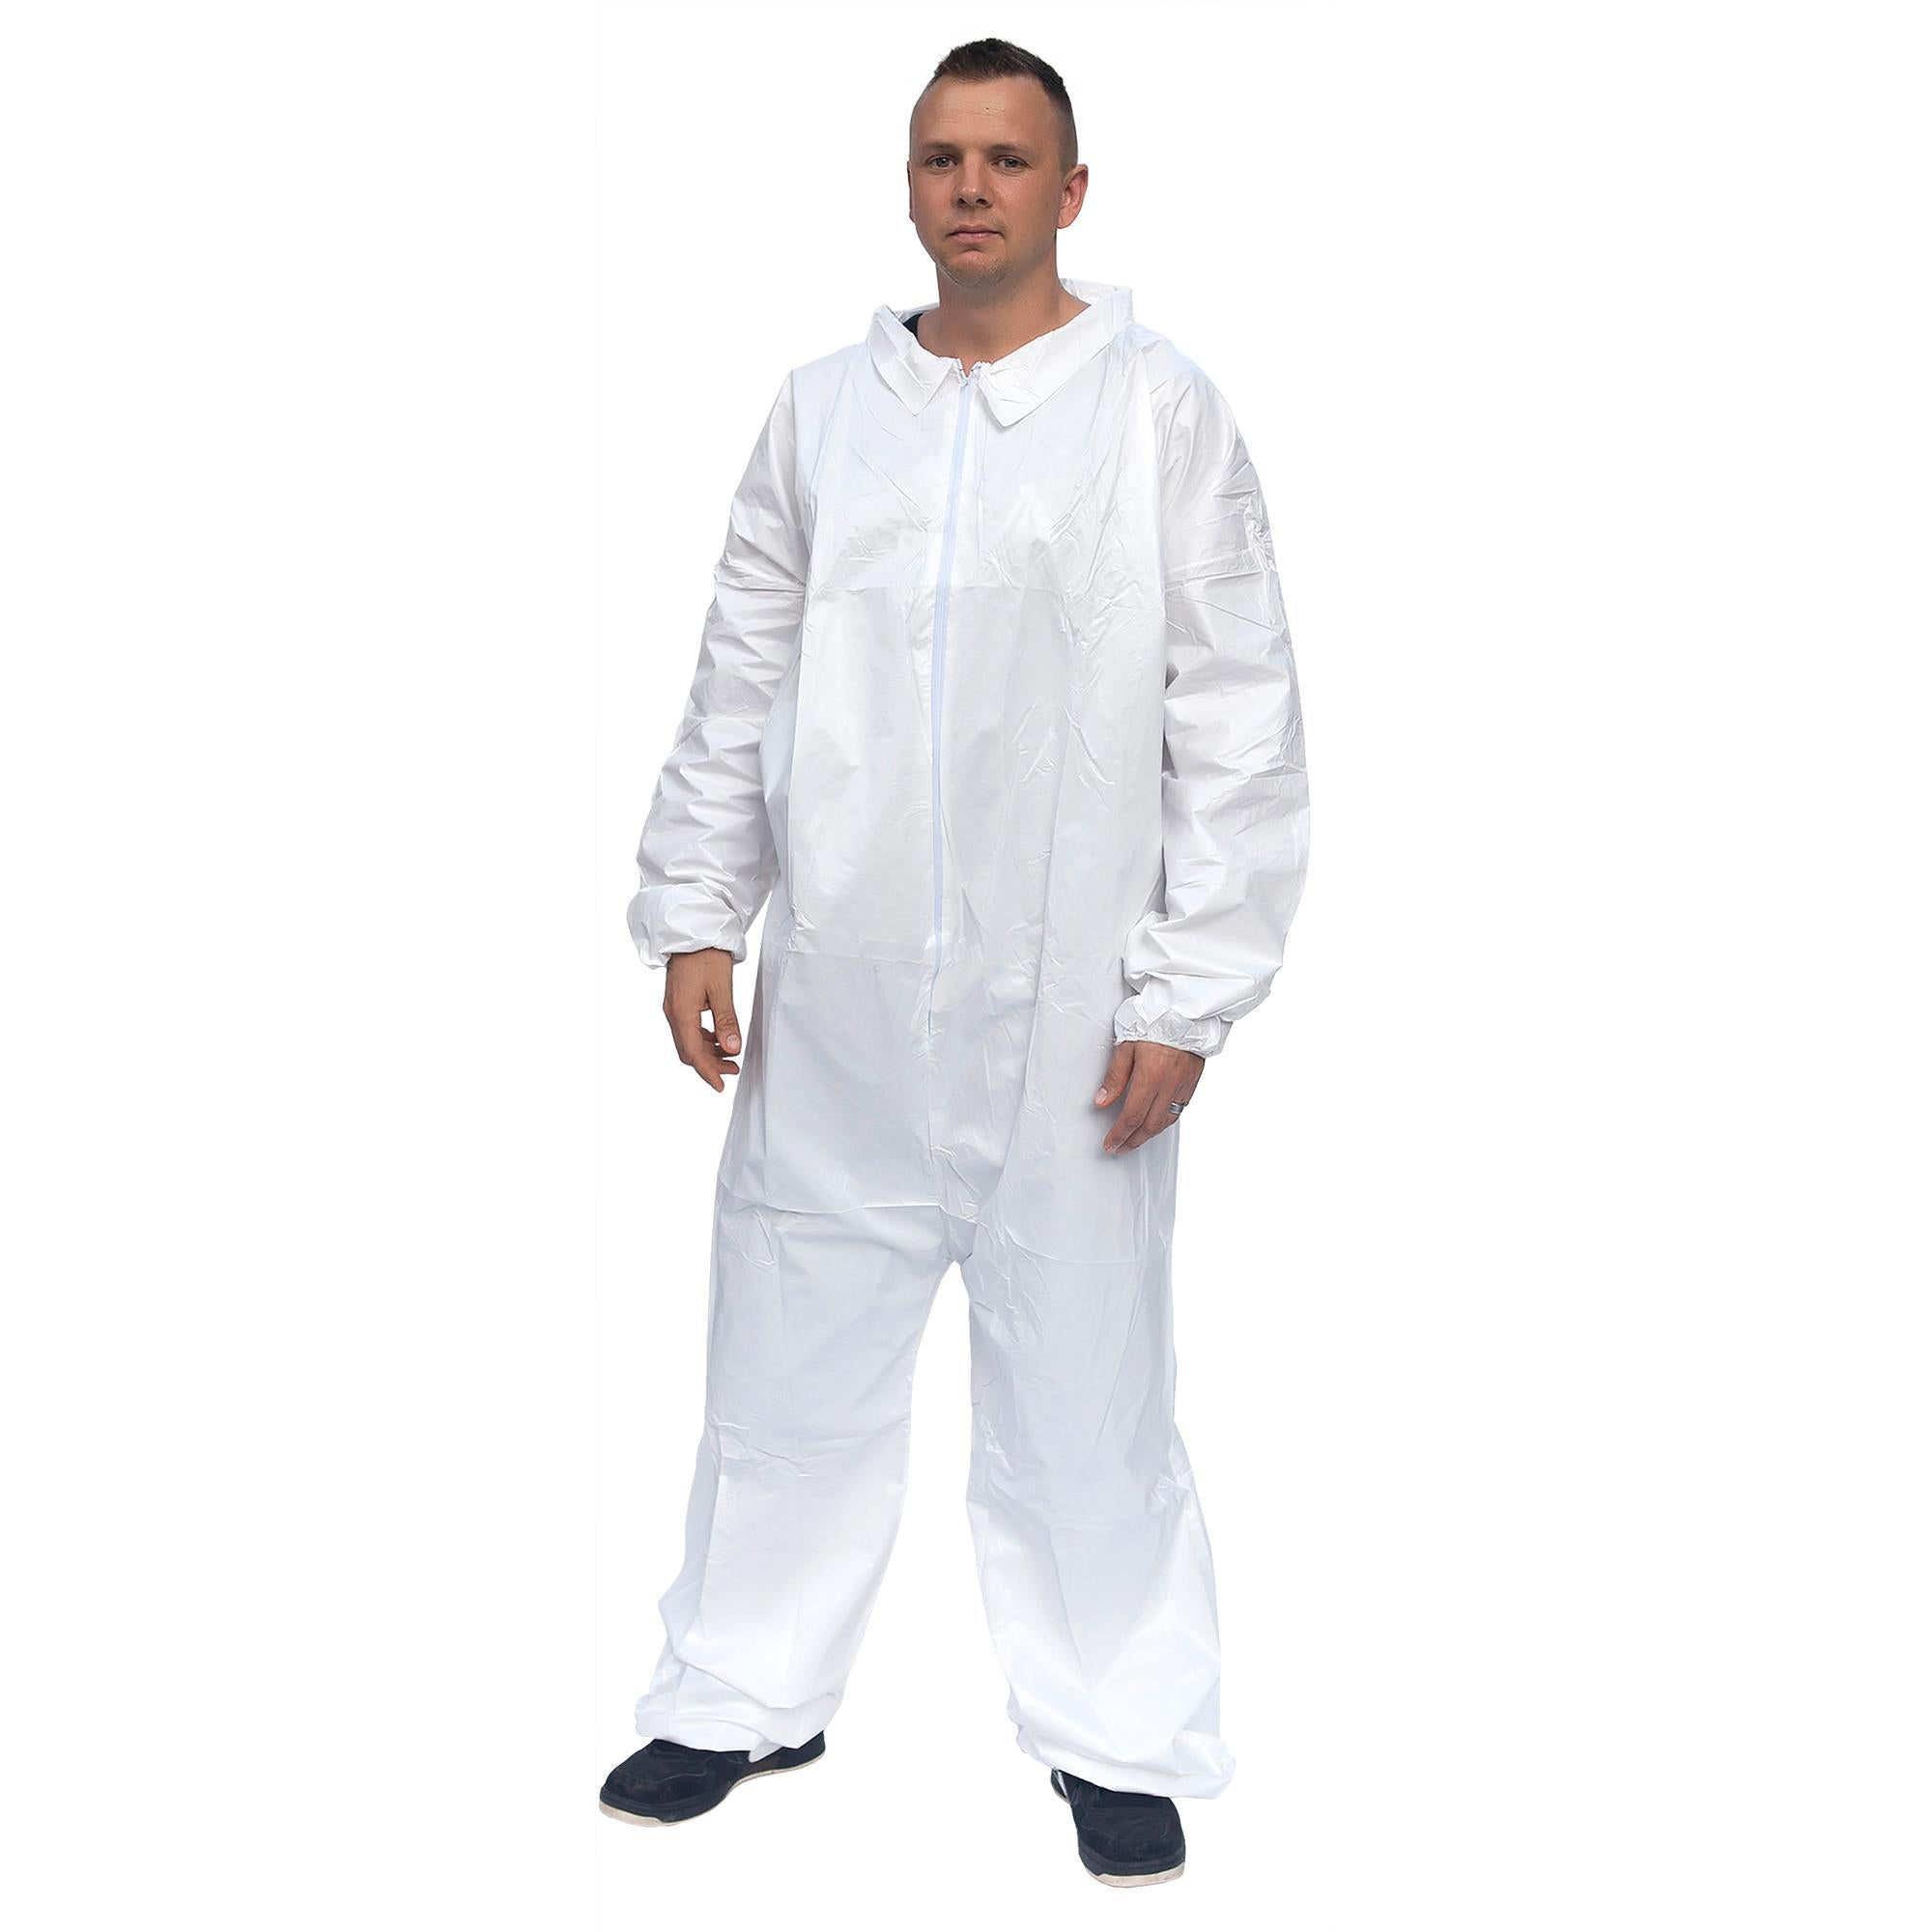 14799 PC125 Coveralls (includes 25 pair of coveralls)